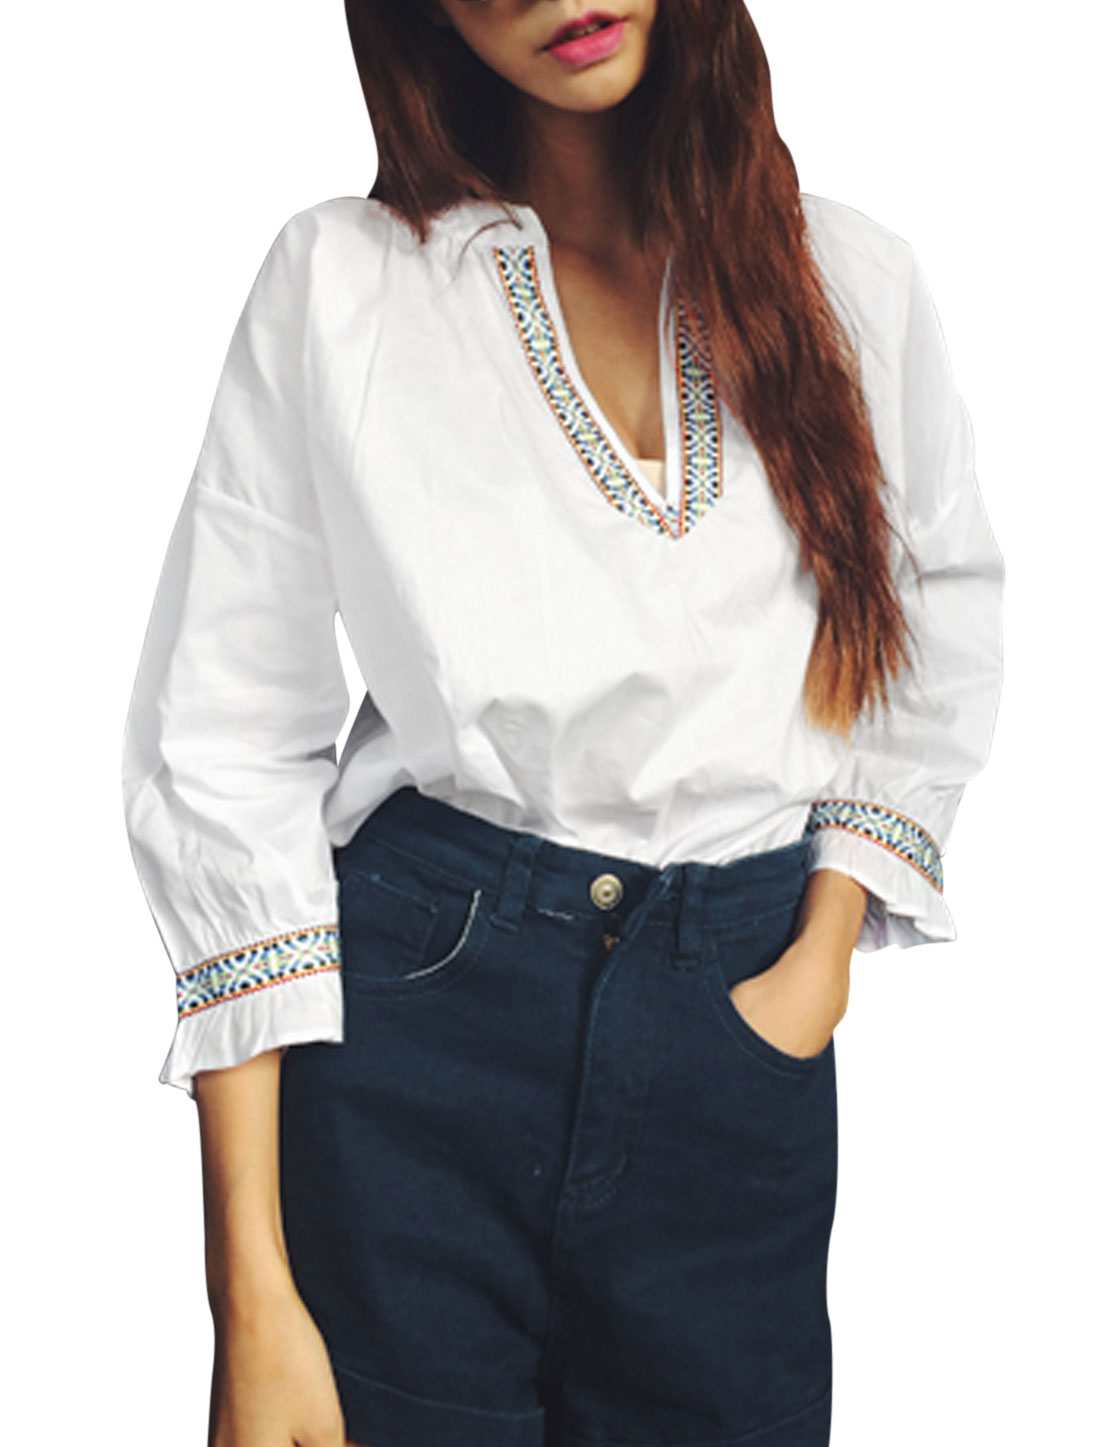 Lady Split Neck Embroidery Detail Fashion Casual Top White S